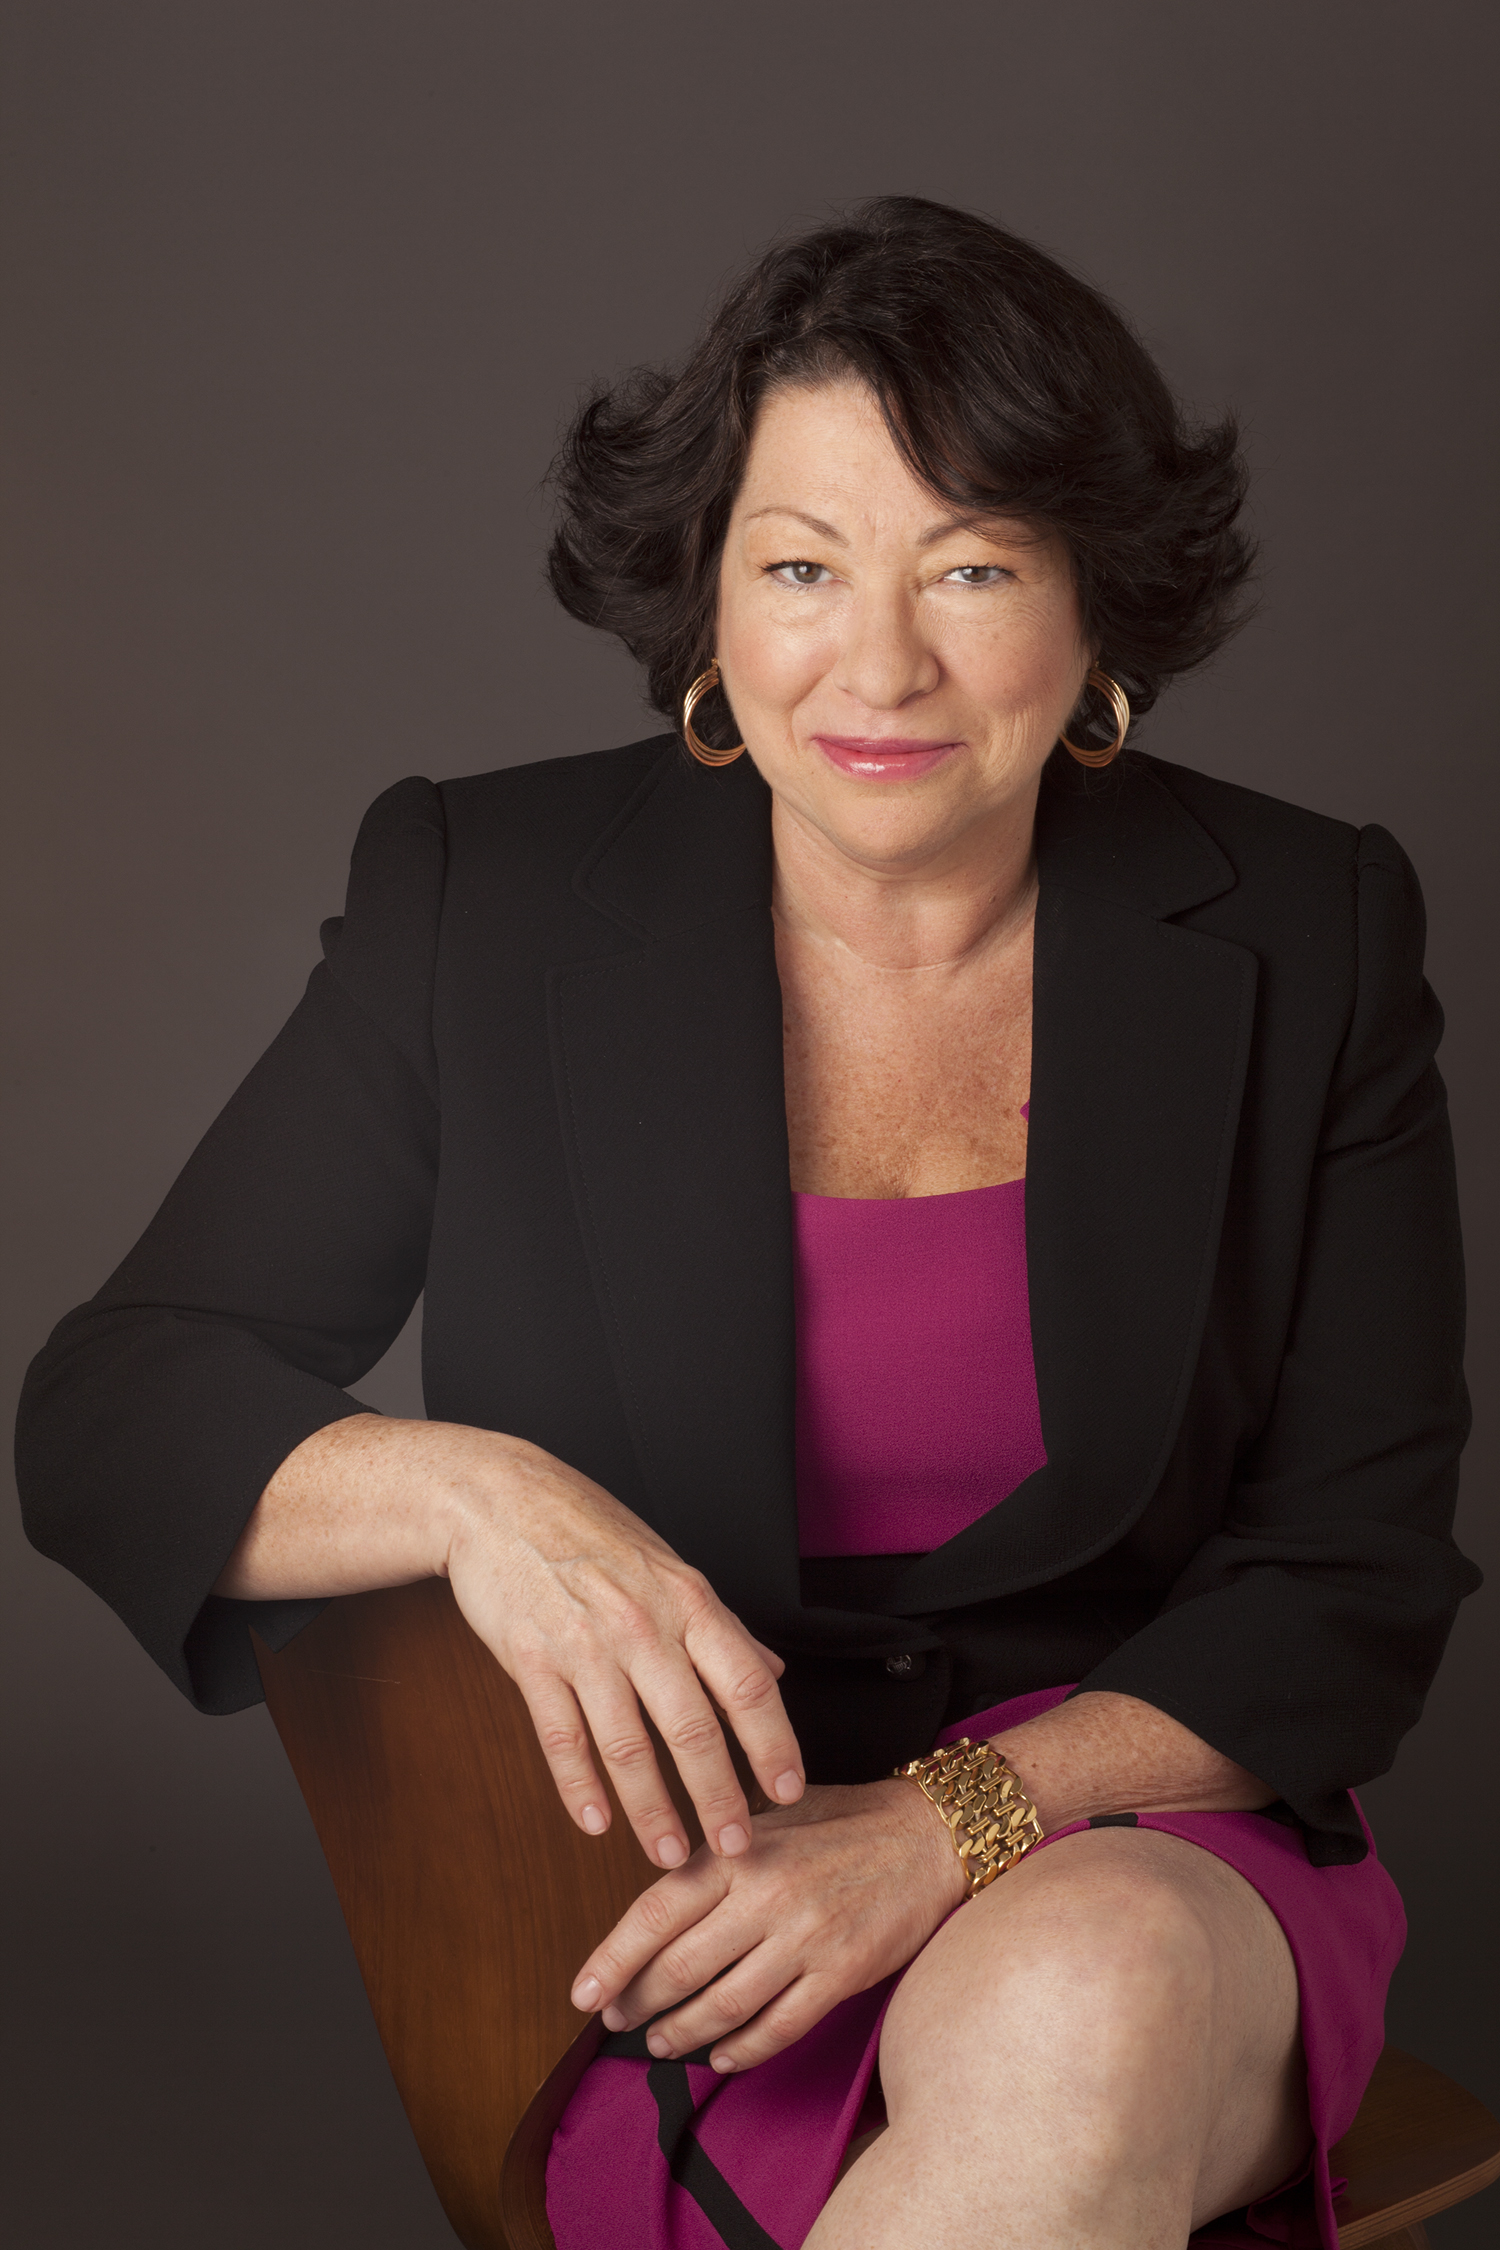 """U.S. Supreme Court Justice Sonia Sotomayor will speak at the University of Utah Jan. 28 at noon in the Huntsman Center. Her appearance highlights the MUSE Project's theme year on justice, for which Sotomayor's book """"My Beloved World"""" is the centerpiece text."""